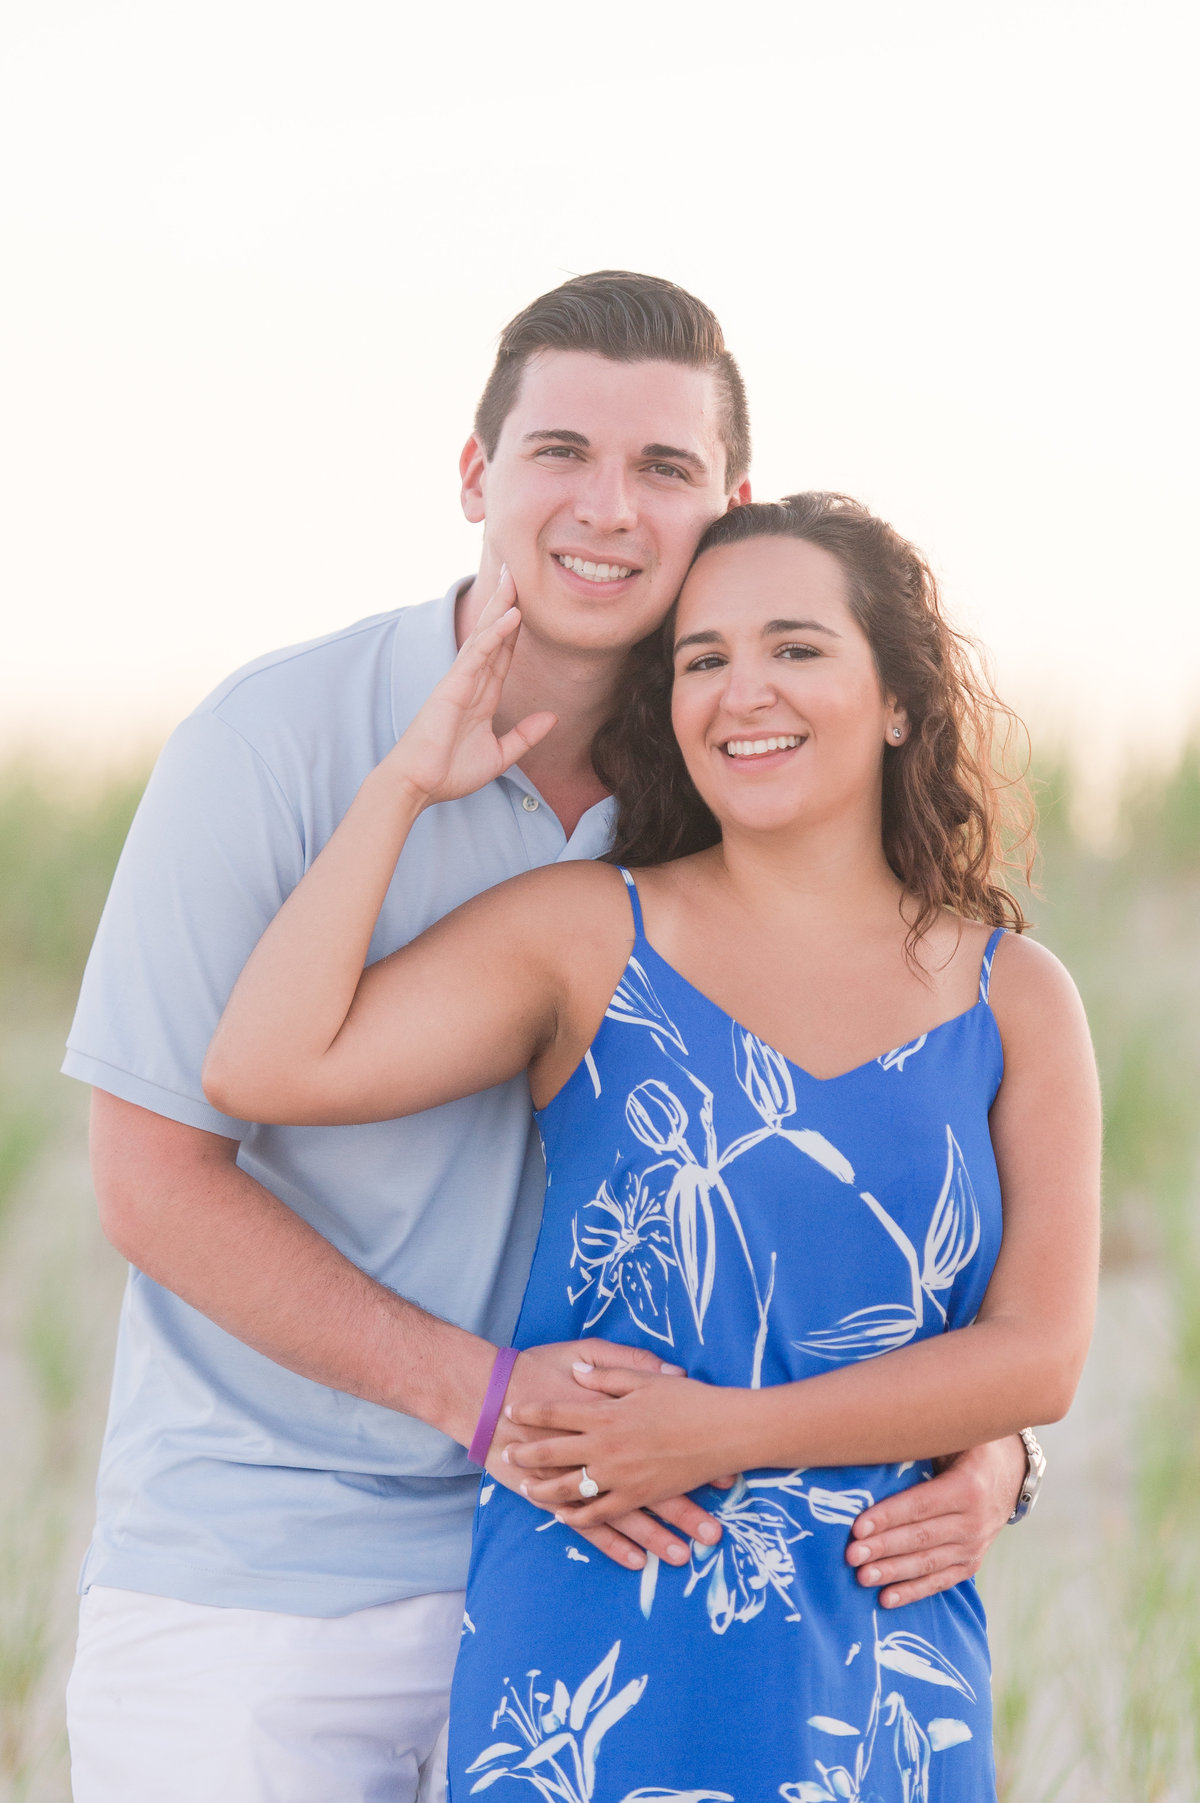 summer-surprise-proposal-lavallette-beach-new-jersey-wedding-photographer-imagery-by-marianne-73